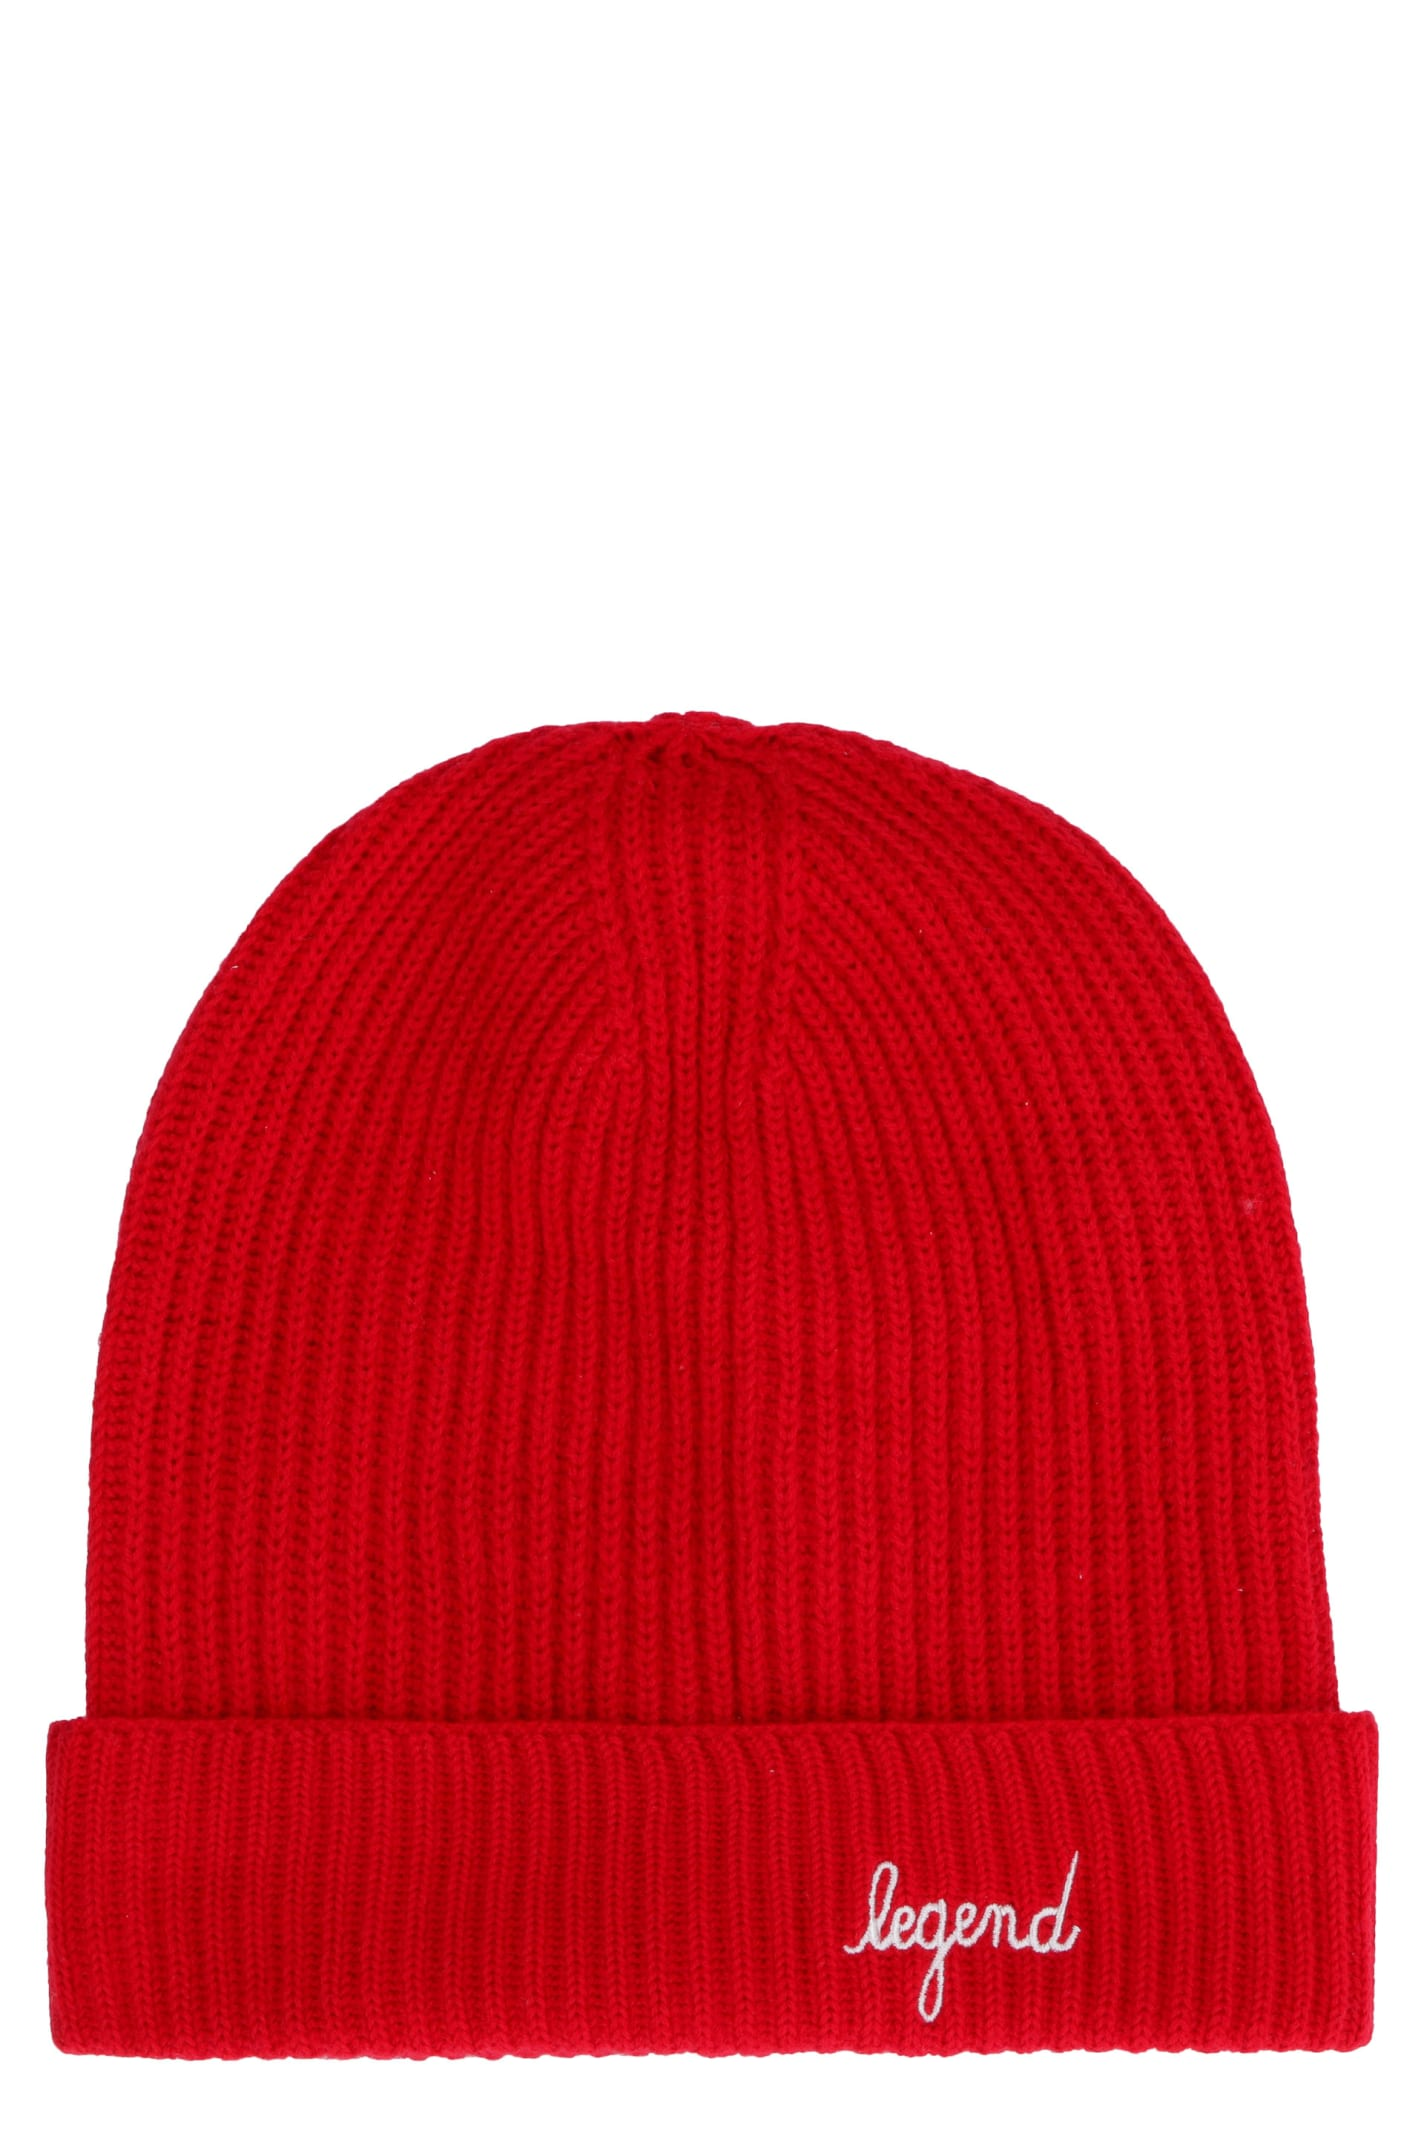 Legend Ribbed Knit Beanie